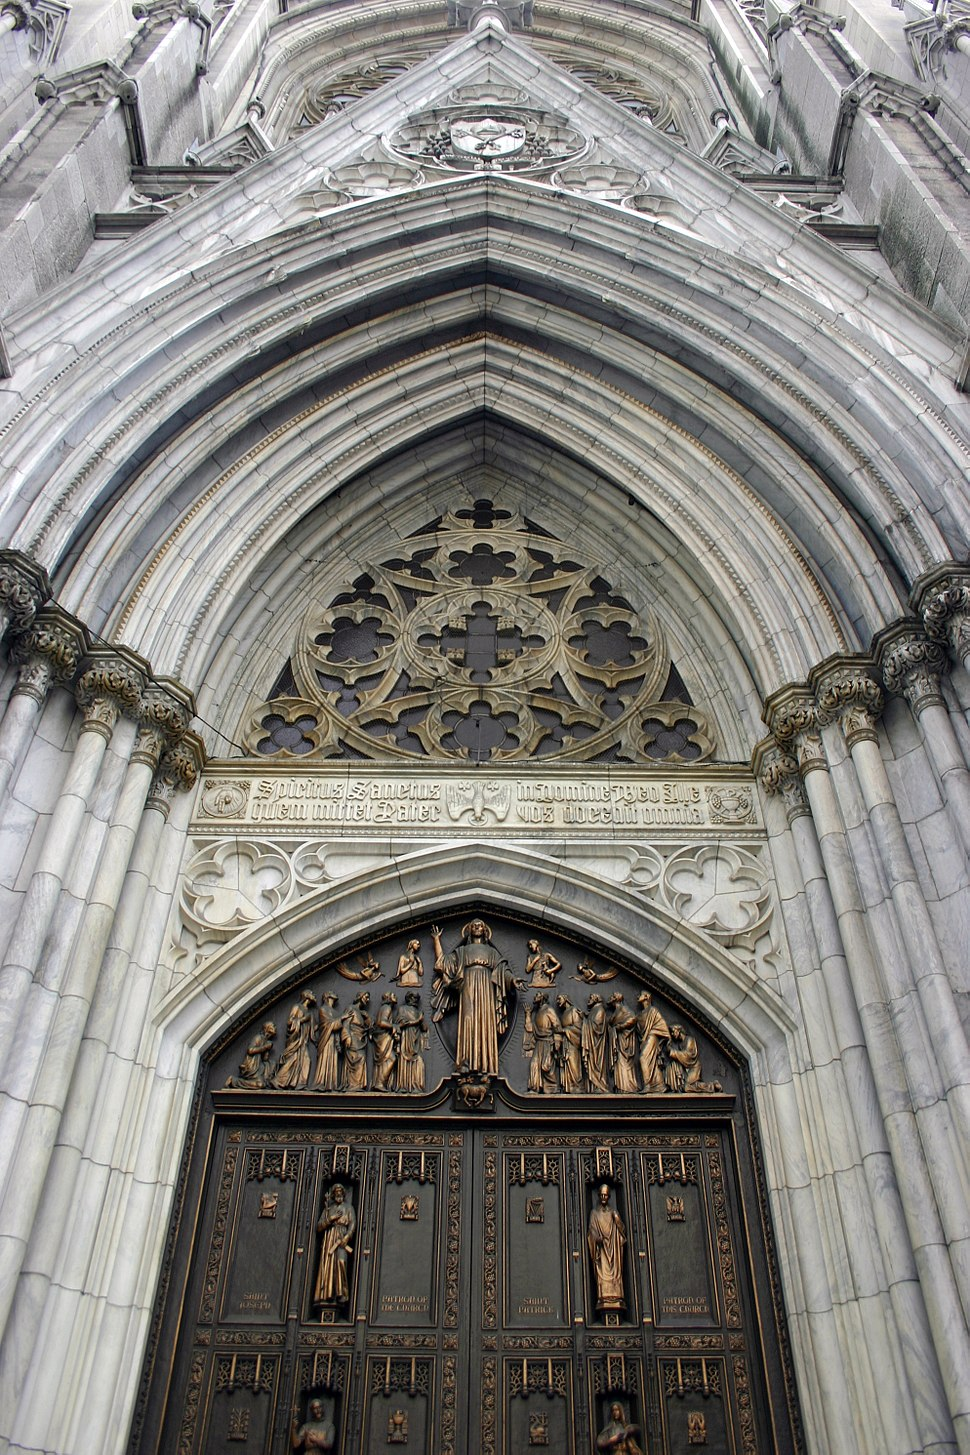 Detail of the facade of St Patrick's Cathedral in New York City